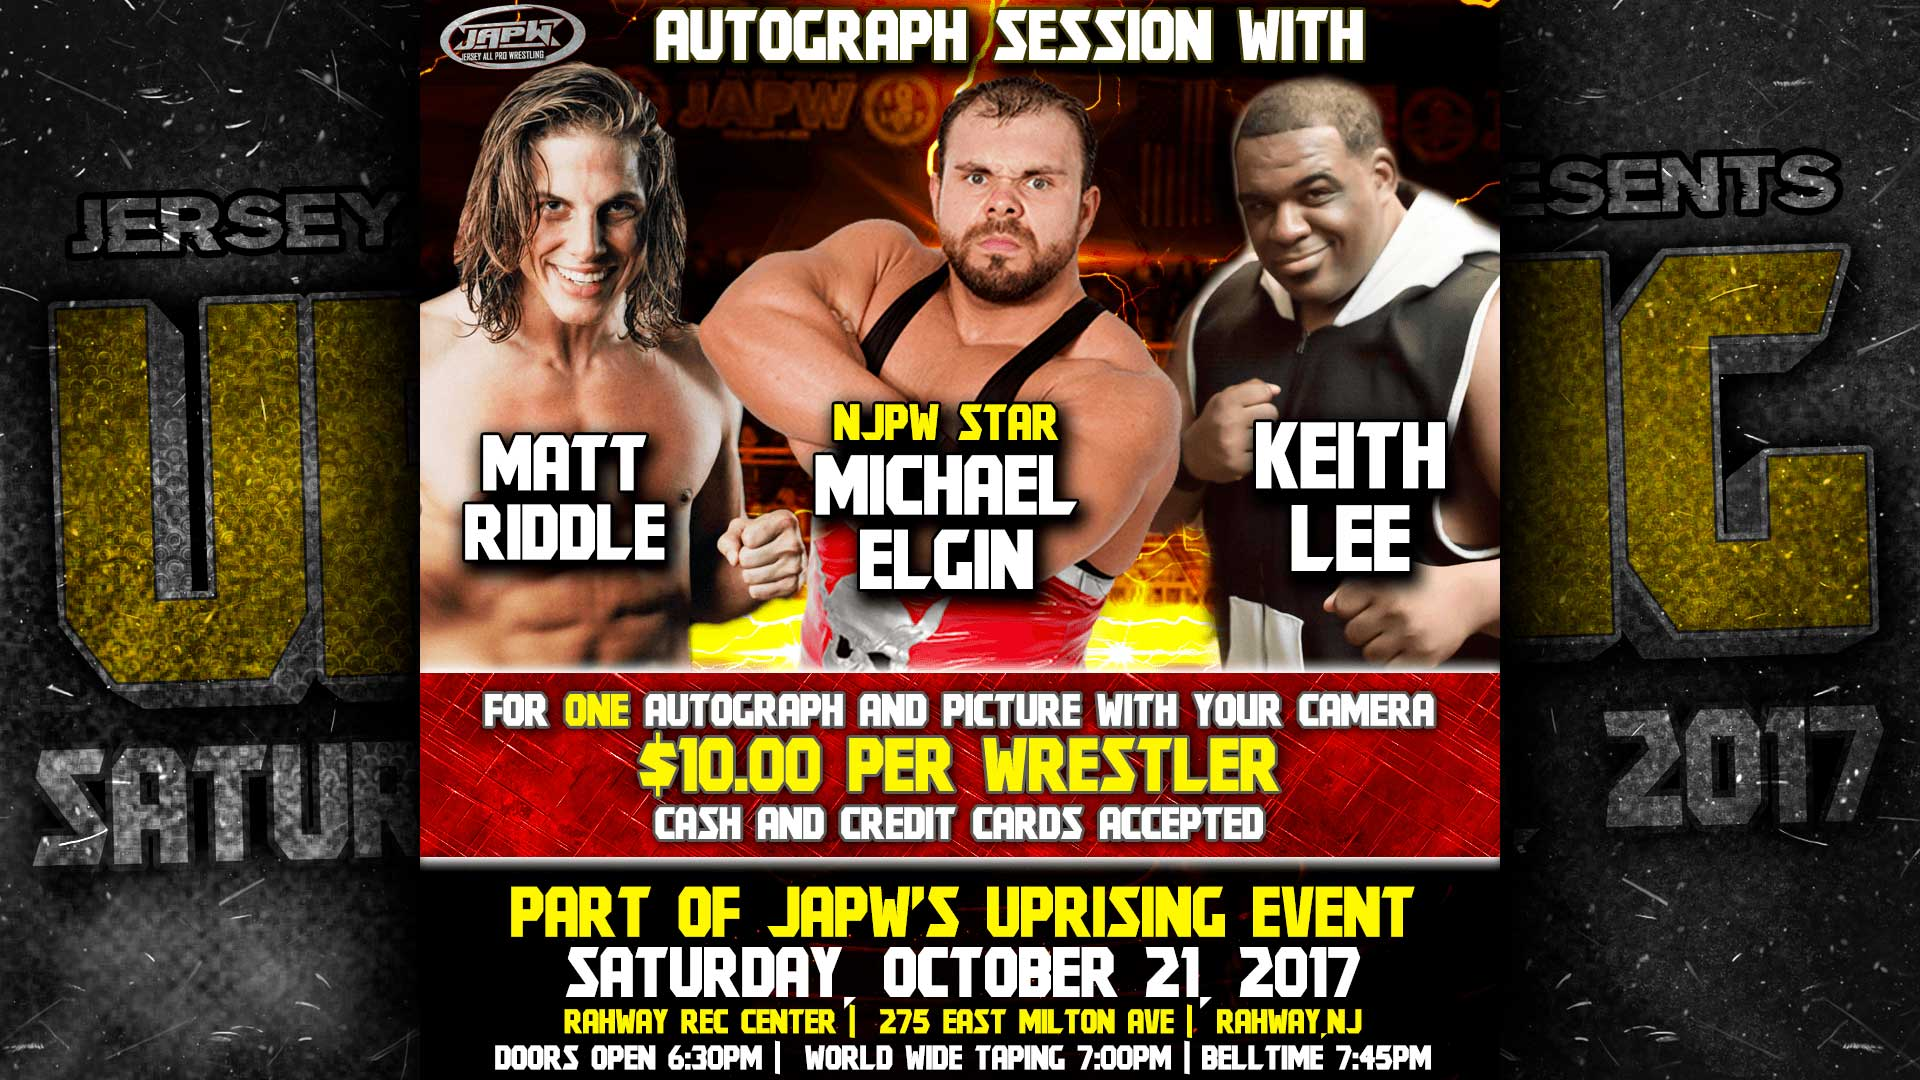 10/21 Autograph Signing with Michael Elgin, Matt Riddle, and Keith Lee!